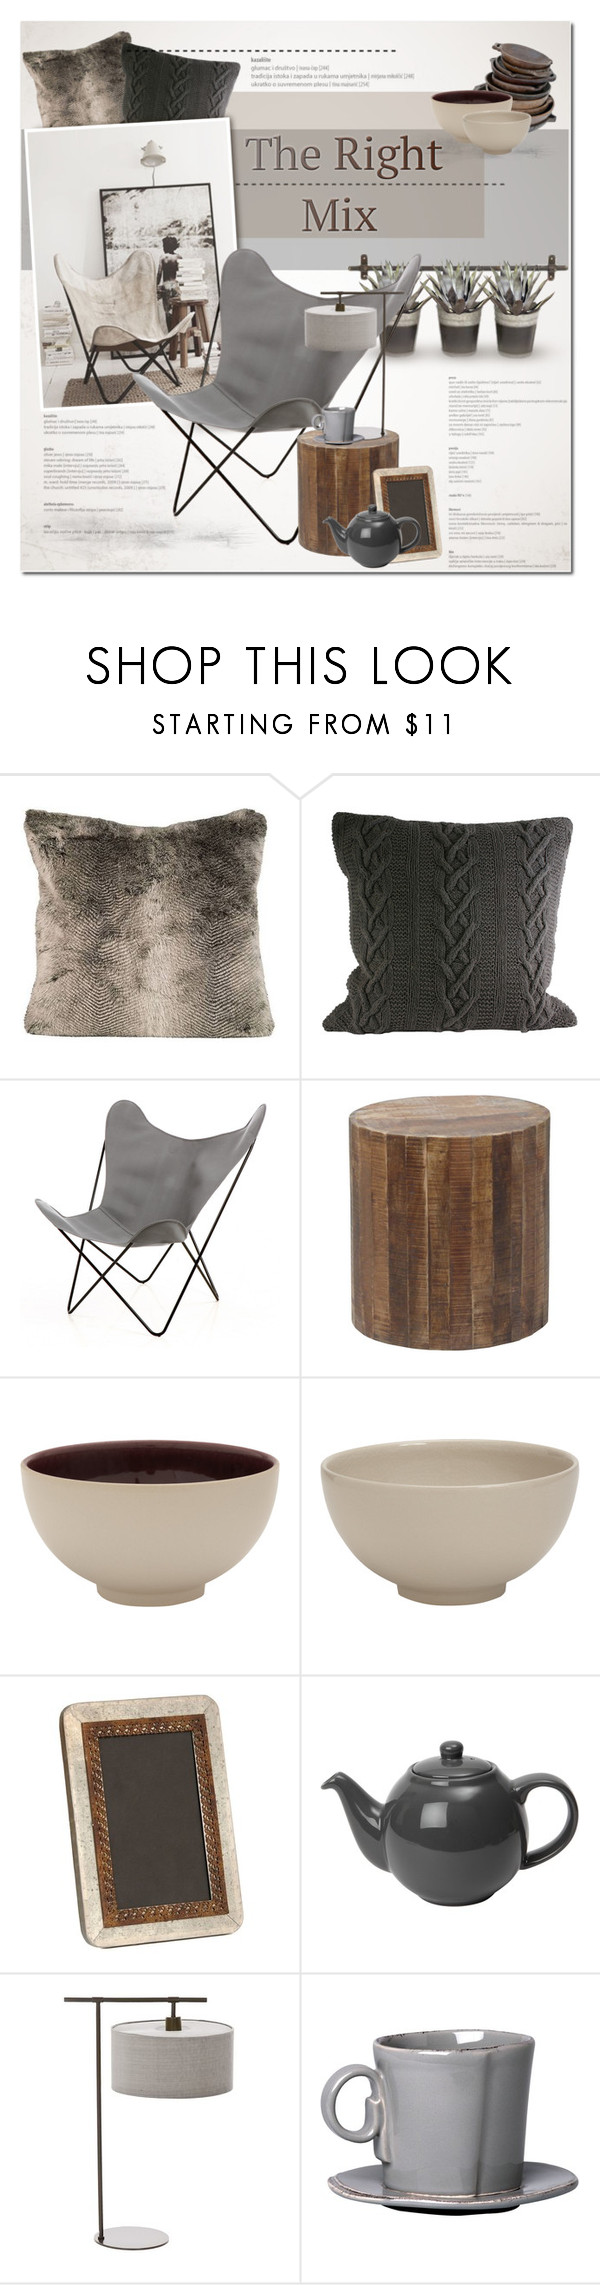 """The right Mix"" by anna-anica ❤ liked on Polyvore featuring interior, interiors, interior design, home, home decor, interior decorating, Jars and Home"